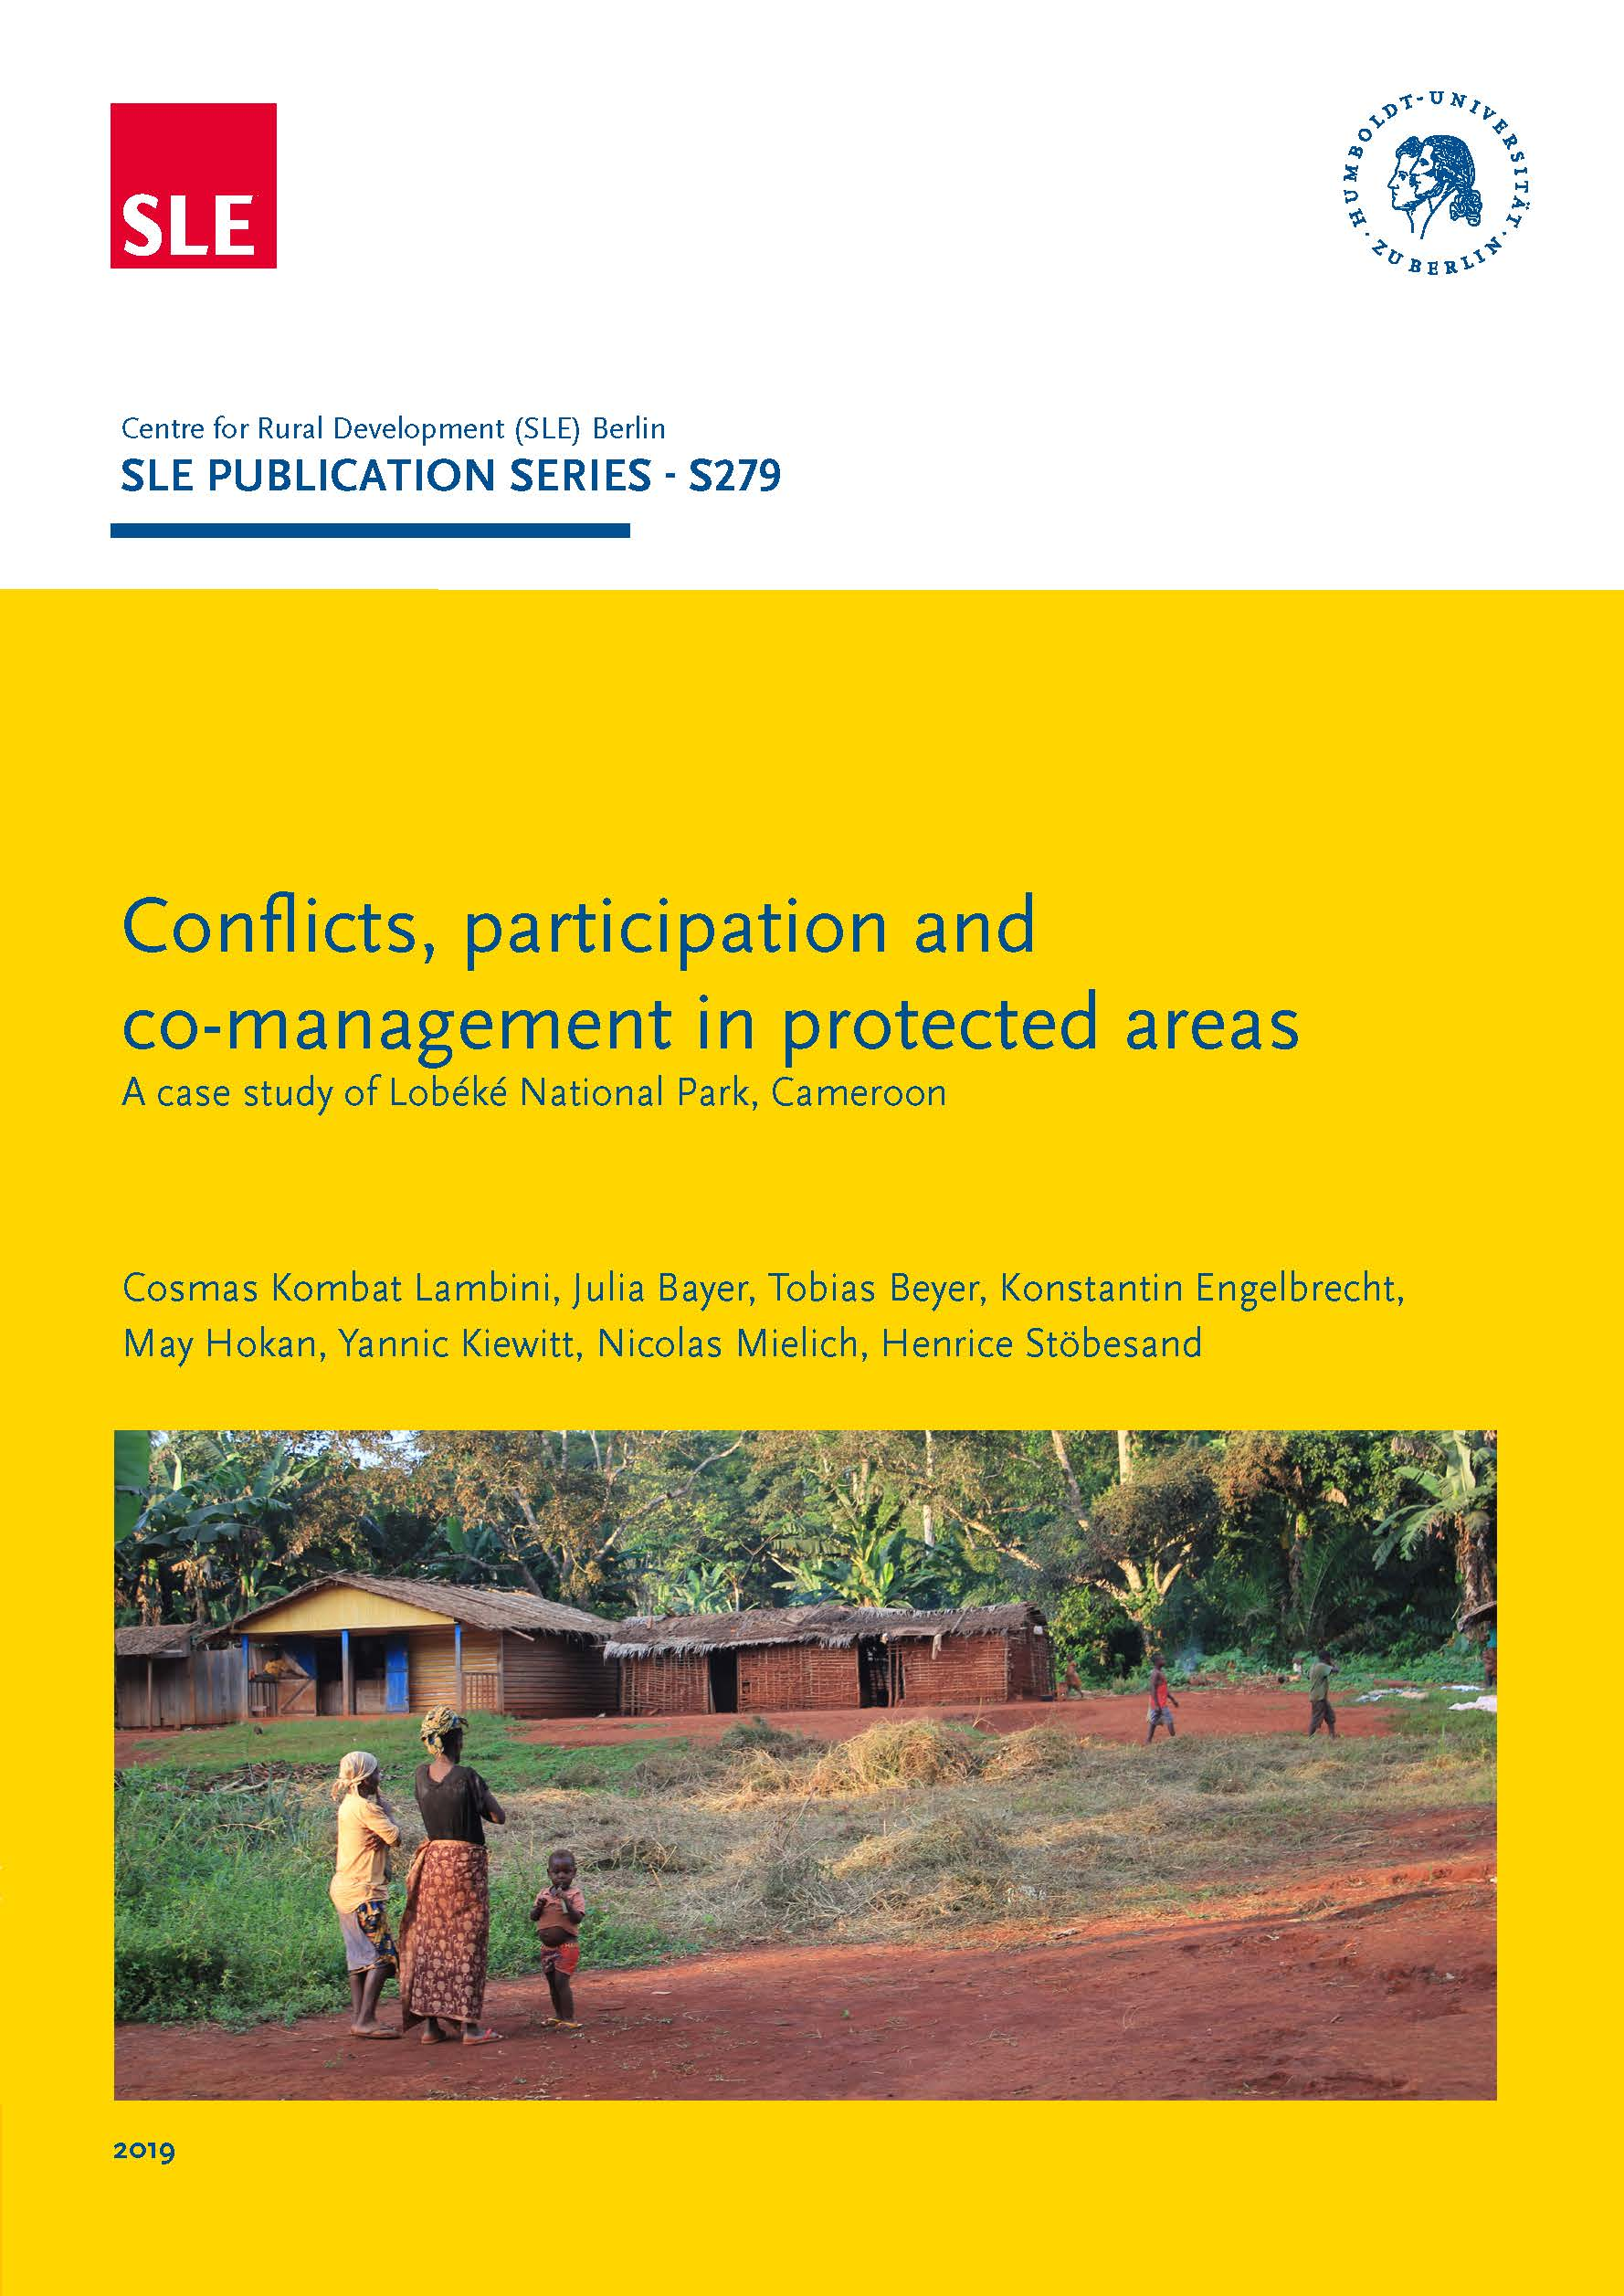 SLE 279 Conflicts participati management in protected areas 1